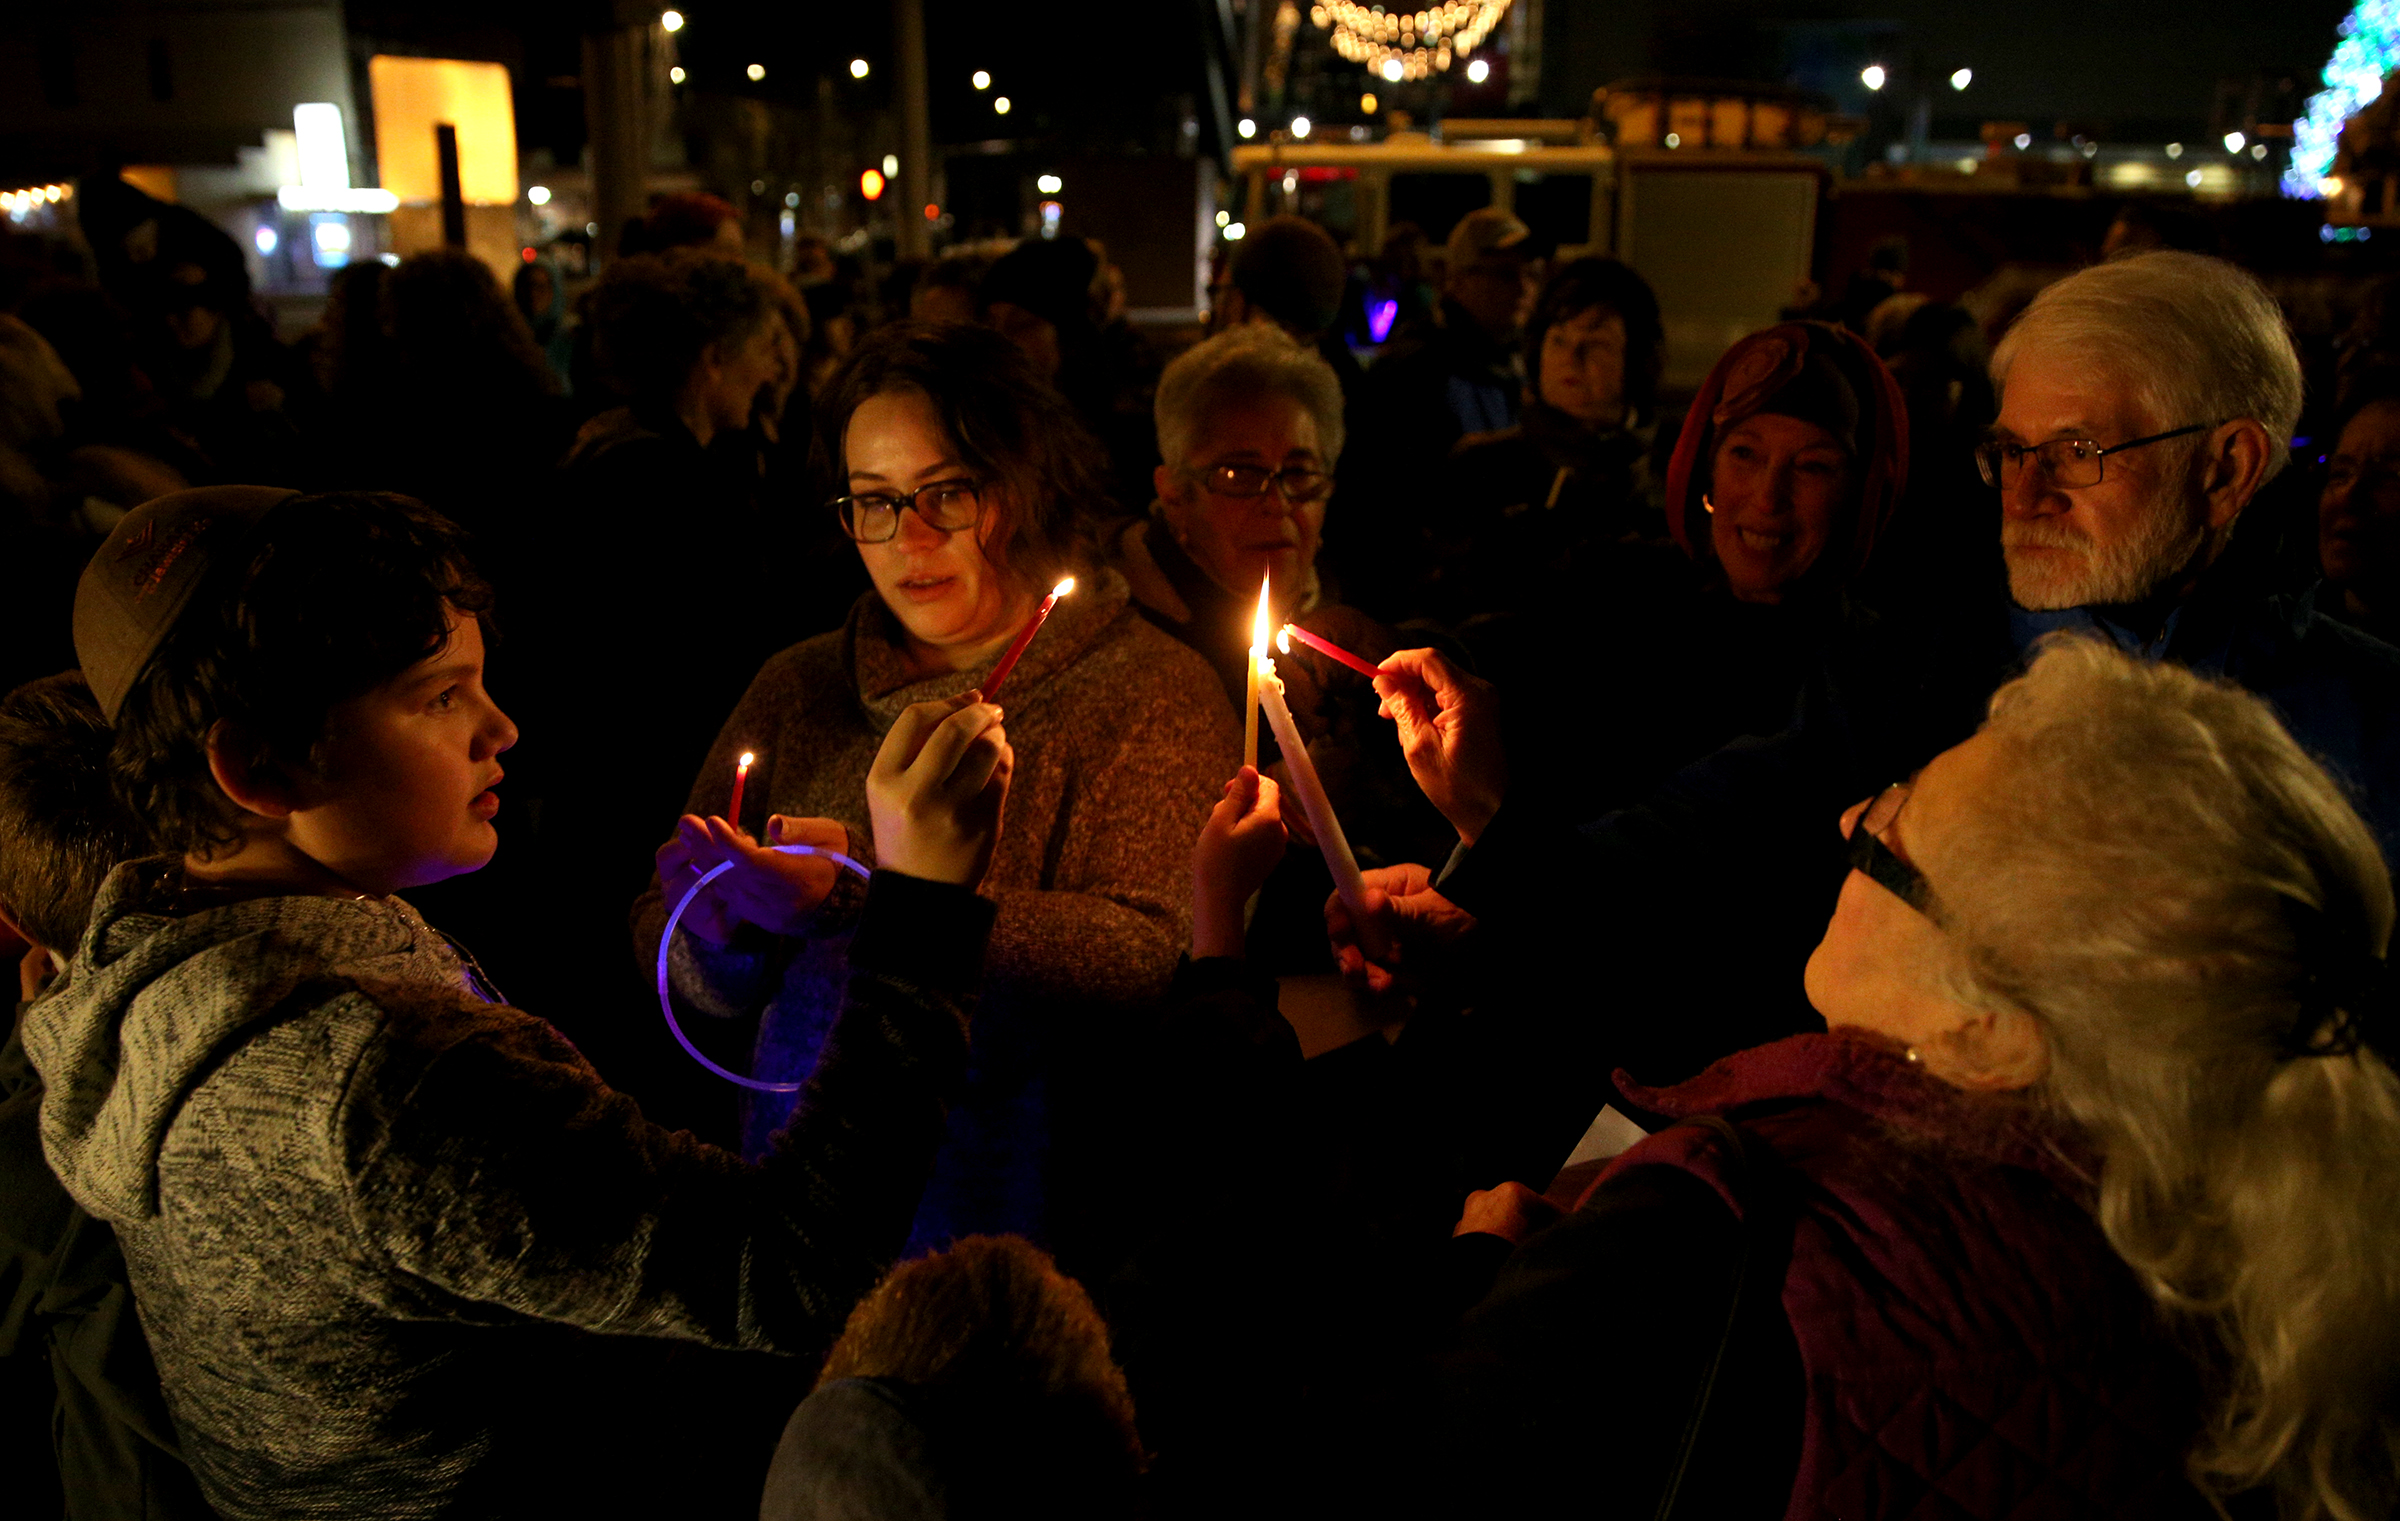 Attendees of a menorah lighting, hosted by the Chabab Center for Jewish Life, light candles on the first day of Hanukkah at Mirror Park in downtown Salem, Ore. on Sunday, Dec. 2, 2018. The candles were lit to show solidarity with the Jewish community in Pittsburgh.